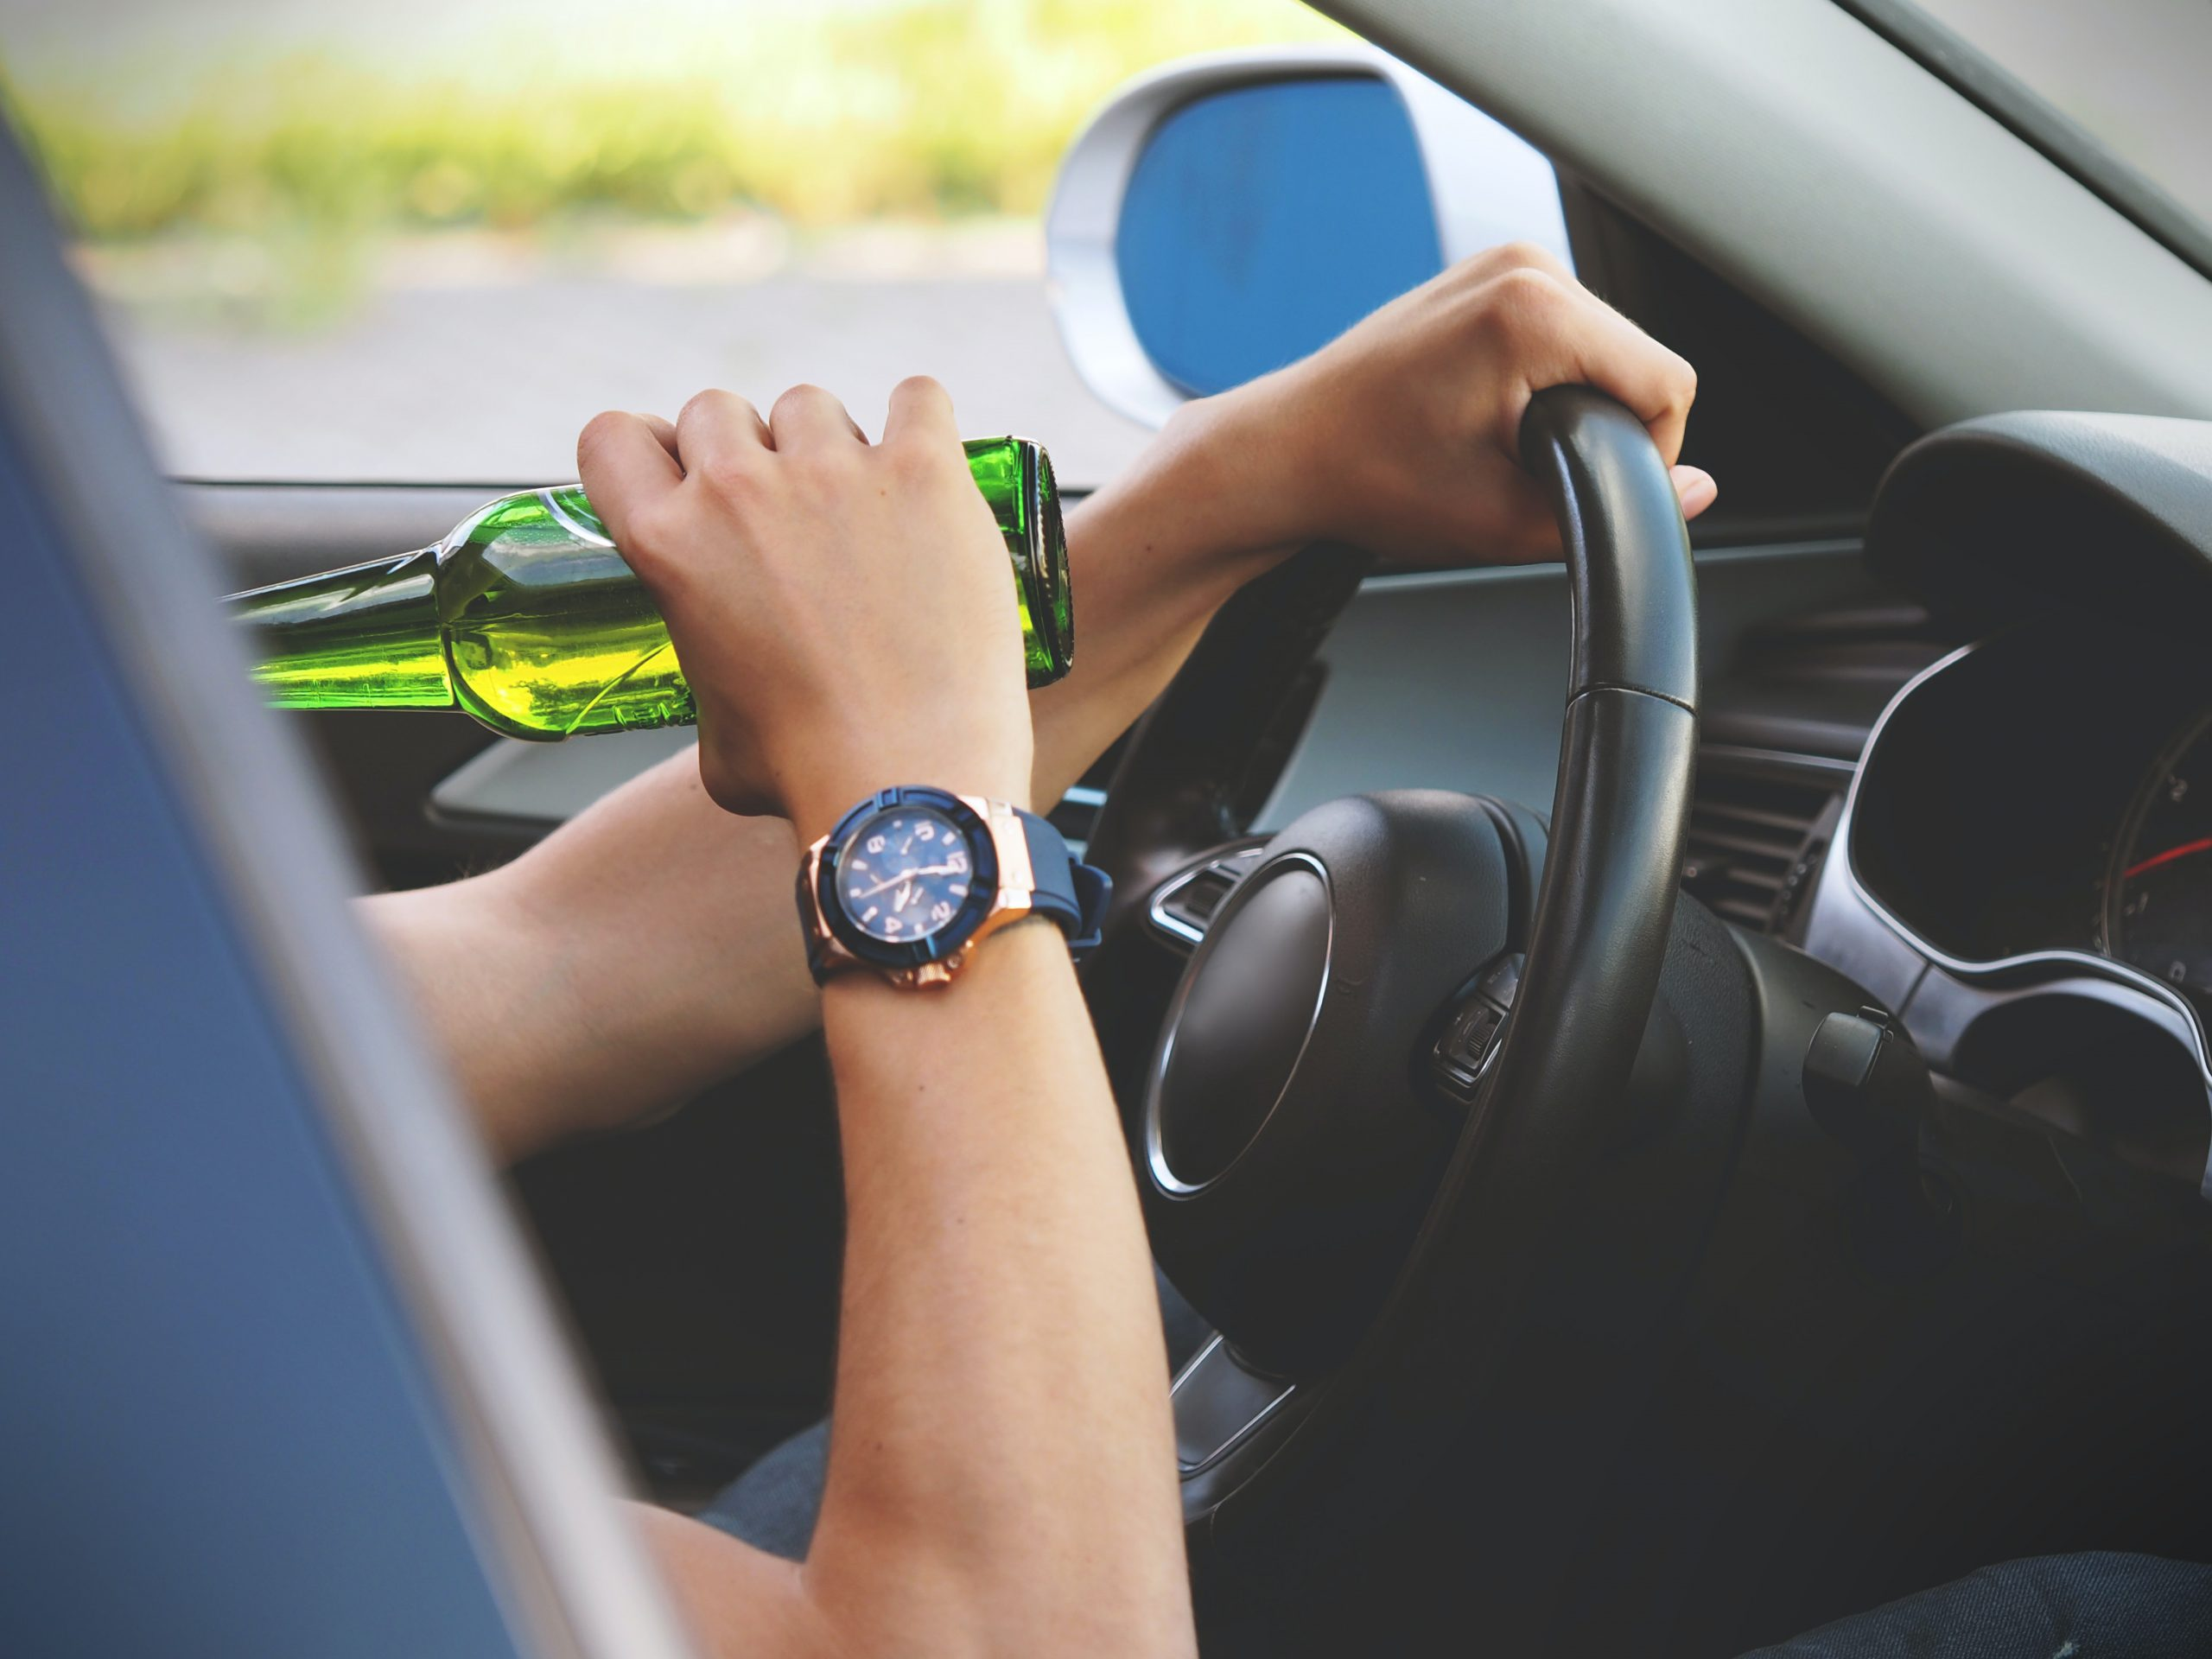 Picture of a person drinking beer while driving a car.